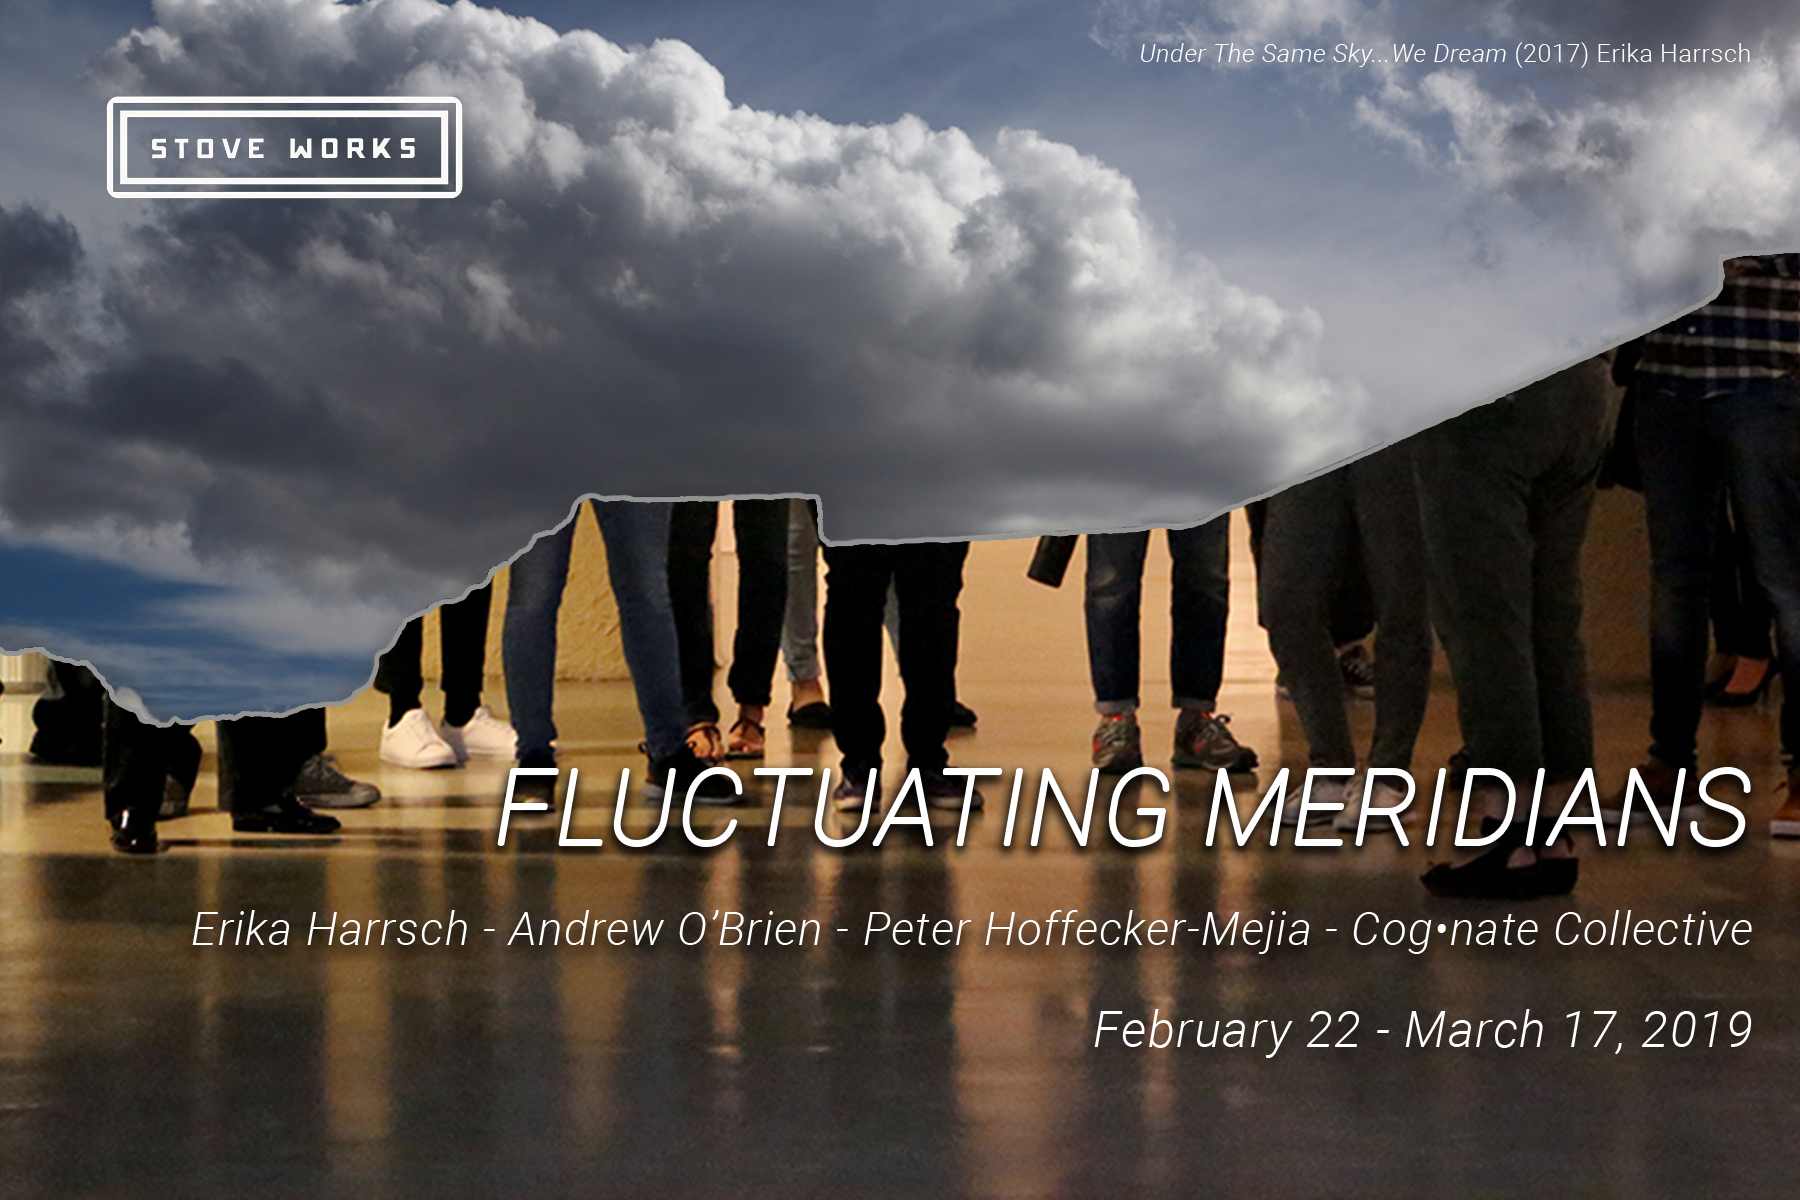 Fluctuating Meridians